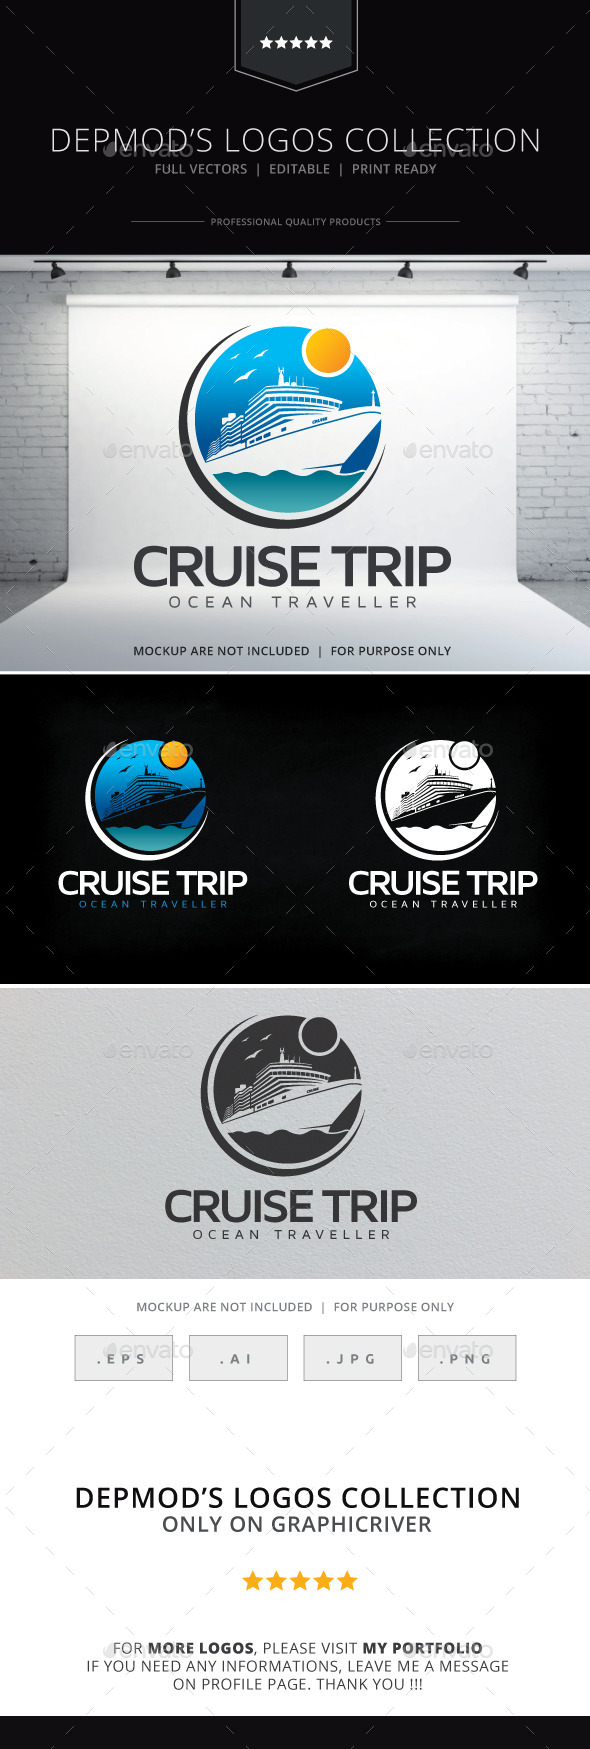 GraphicRiver Cruise Trip Logo 10099285